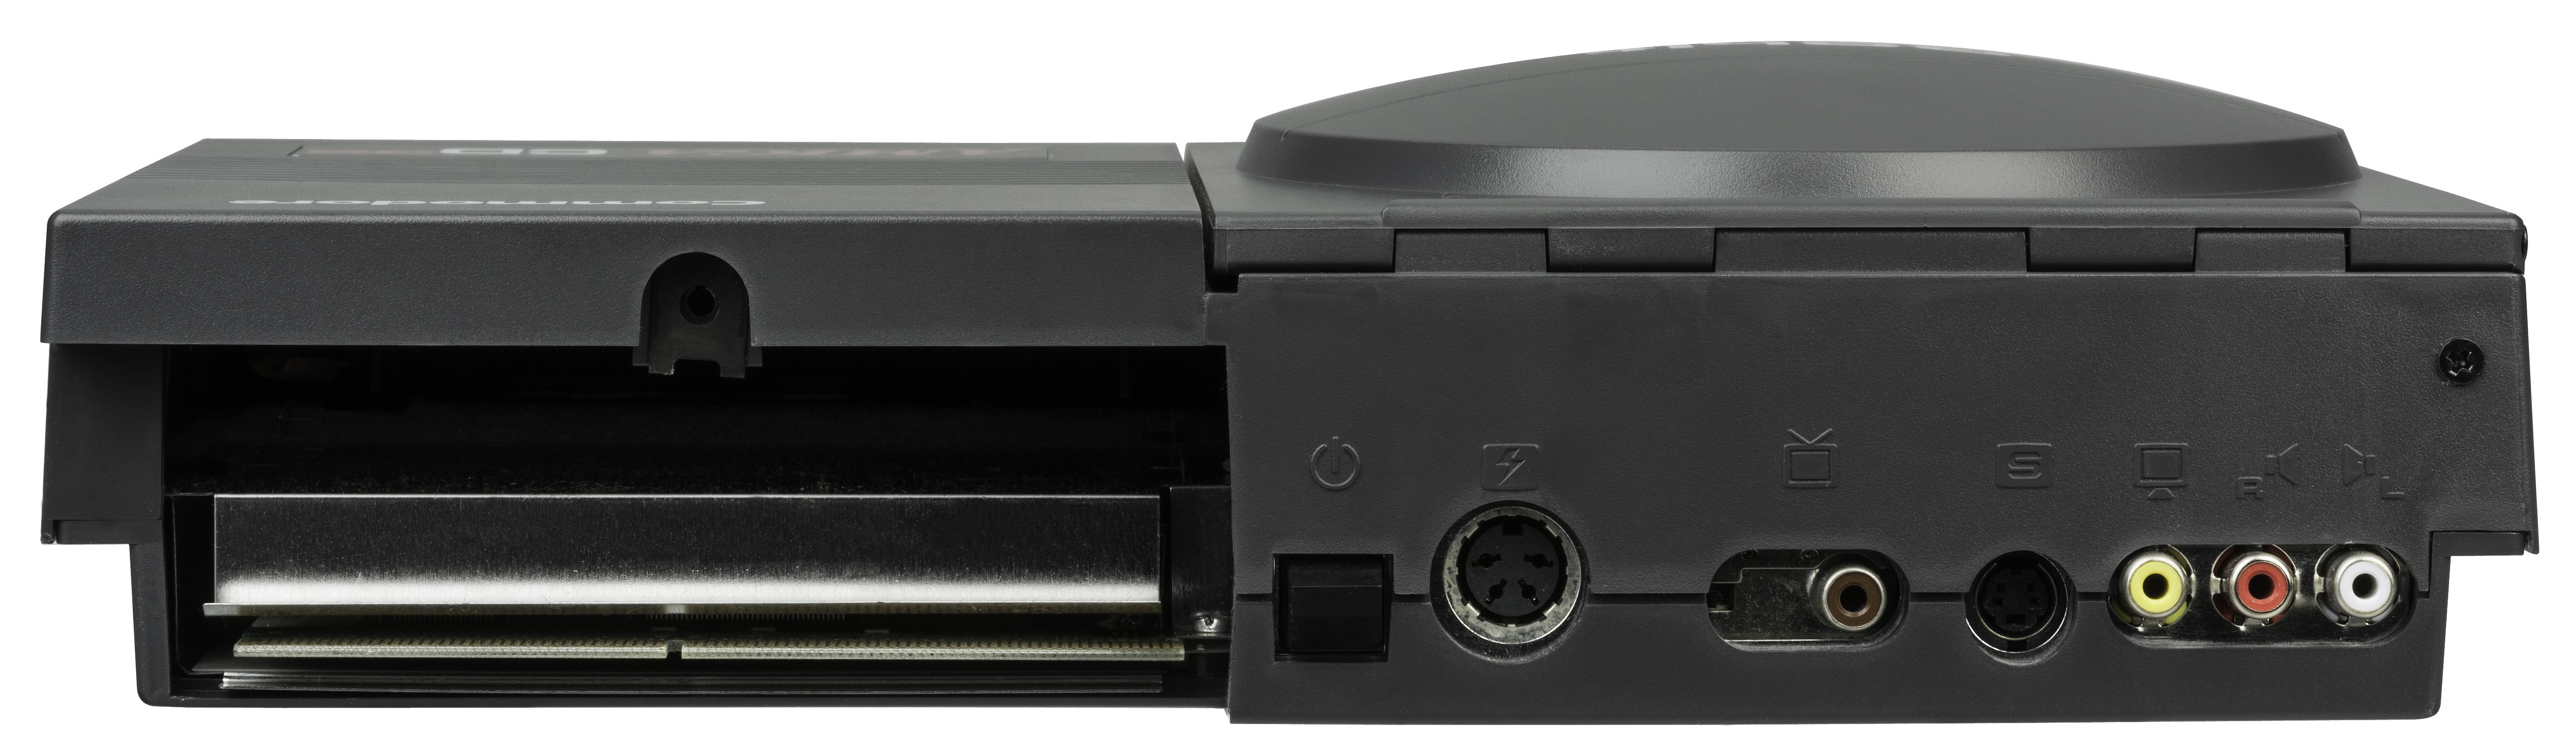 unconventional power supply for a game console, but also comes with a large expansion slot that can be used for add-ons that make it more like a traditional Amiga computer